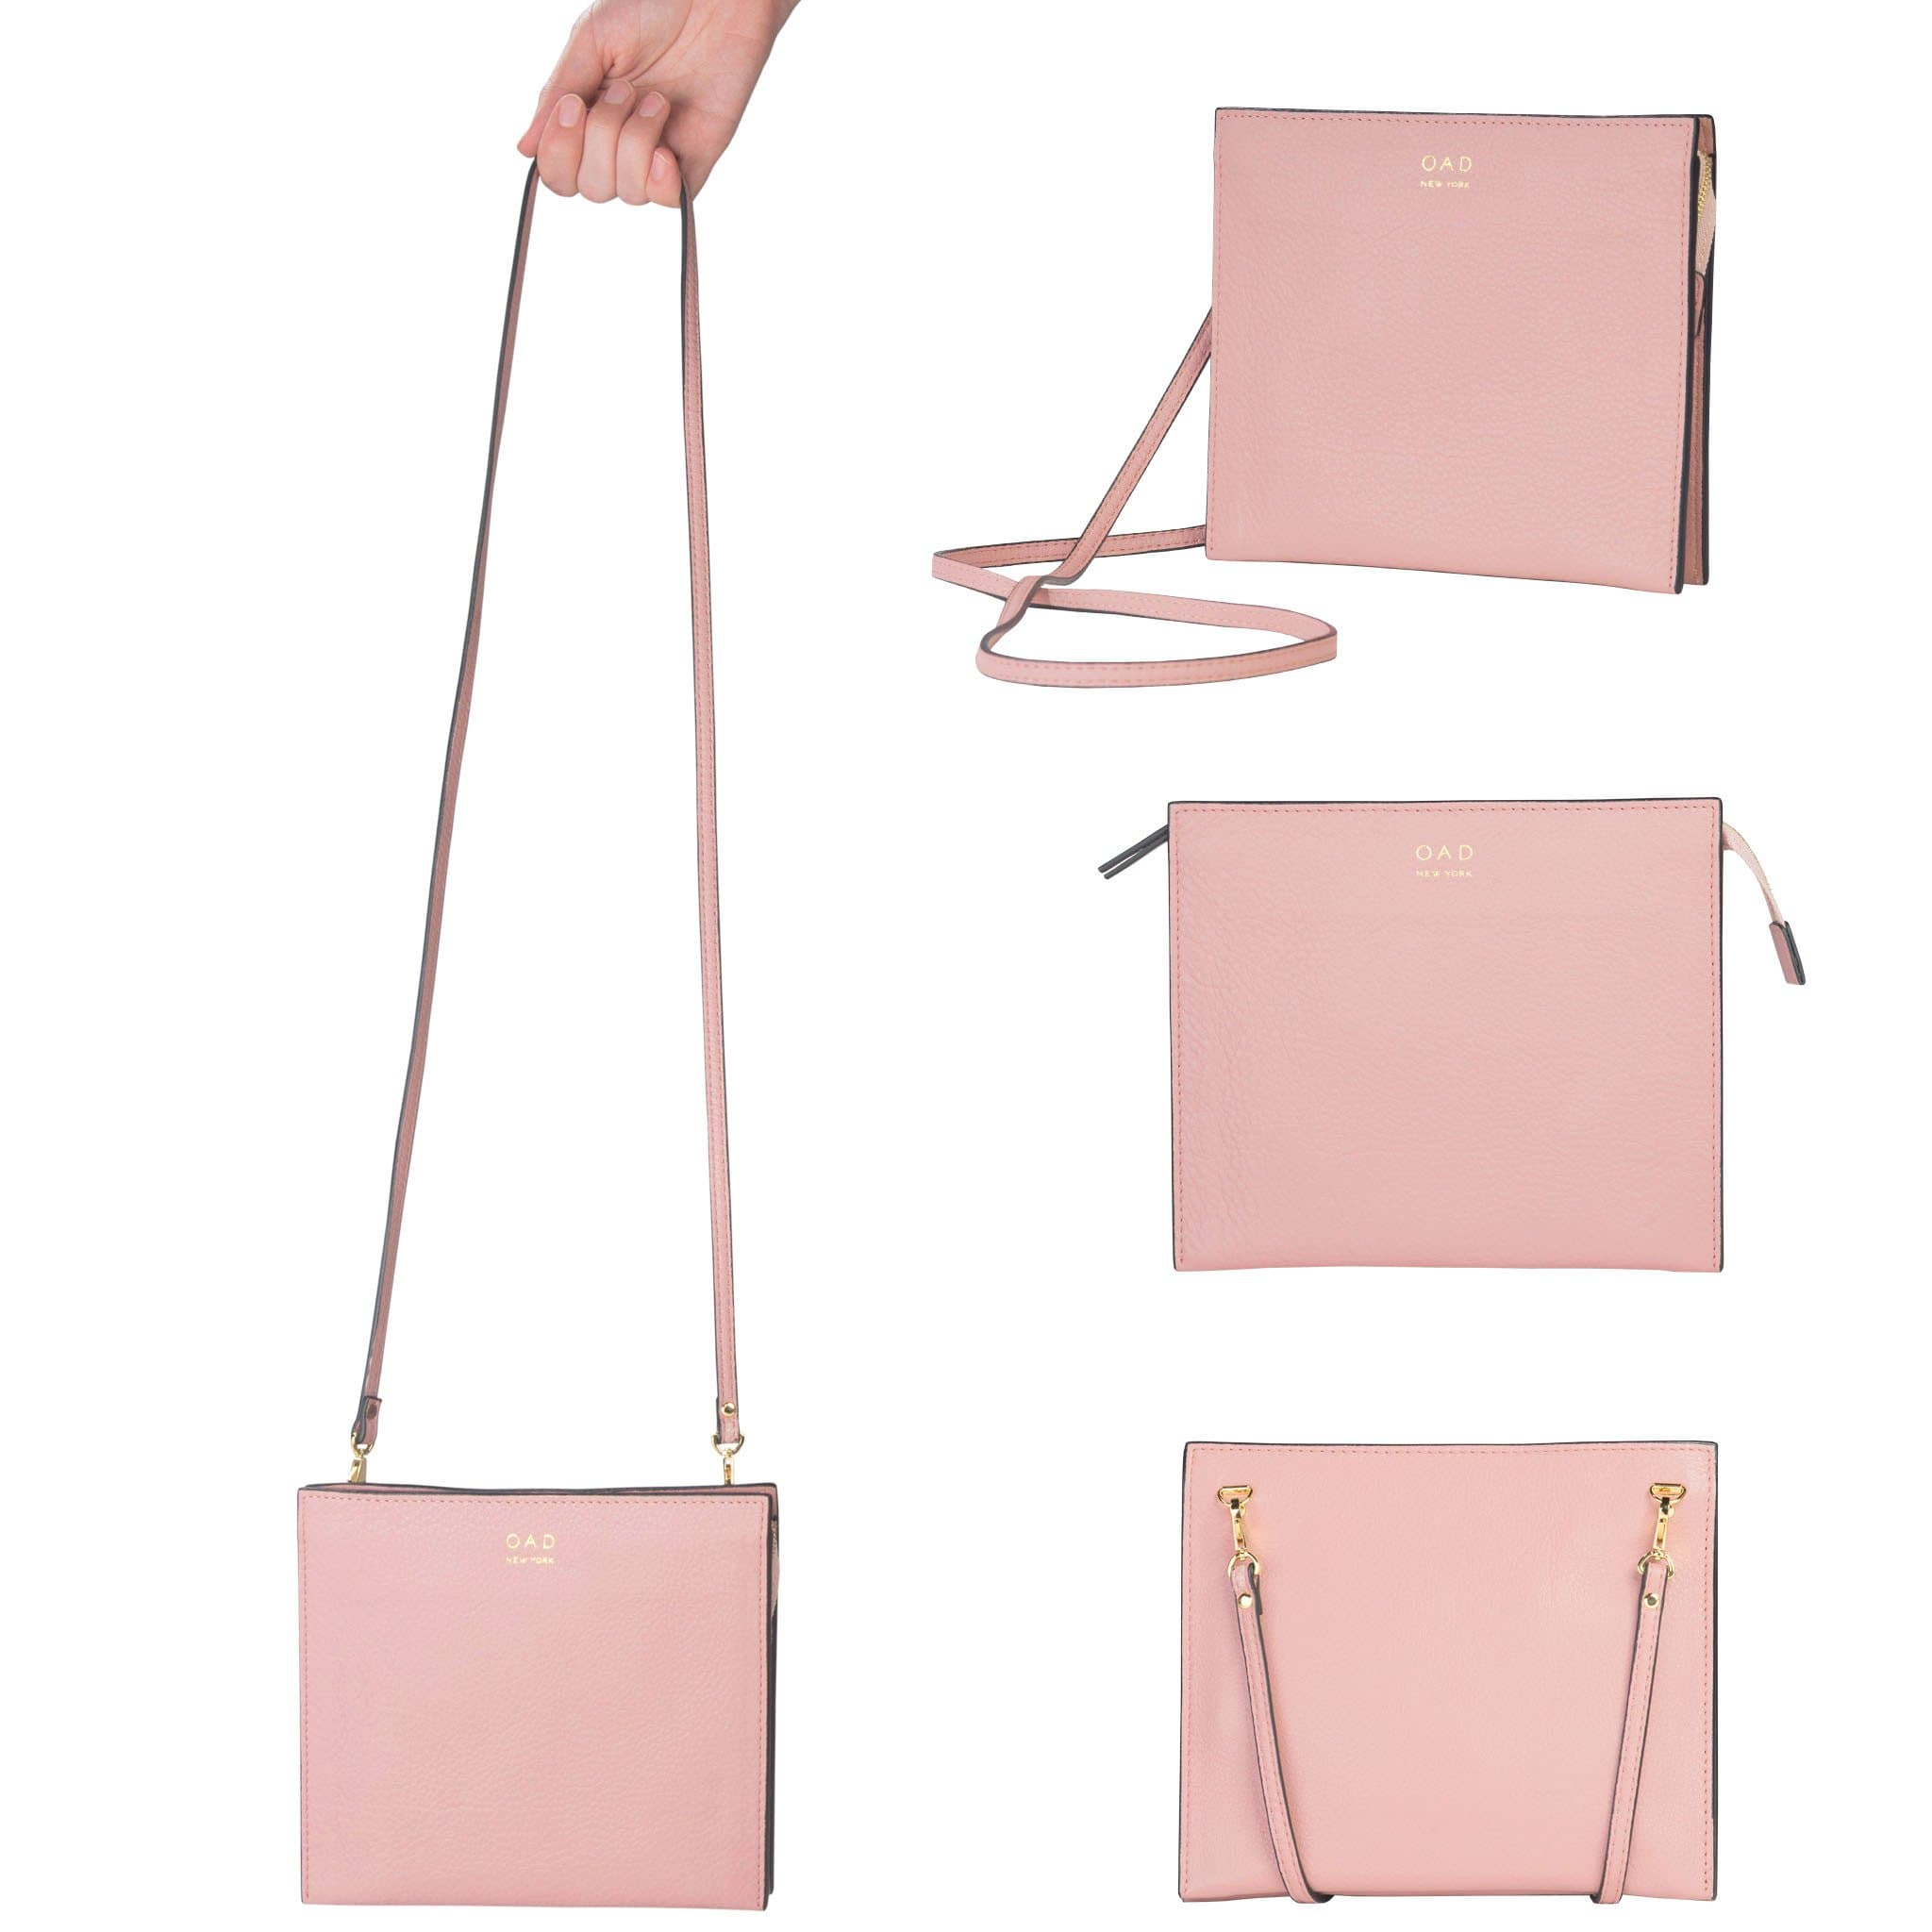 Dual Slim - Rose Pink - OAD NEW YORK - 2